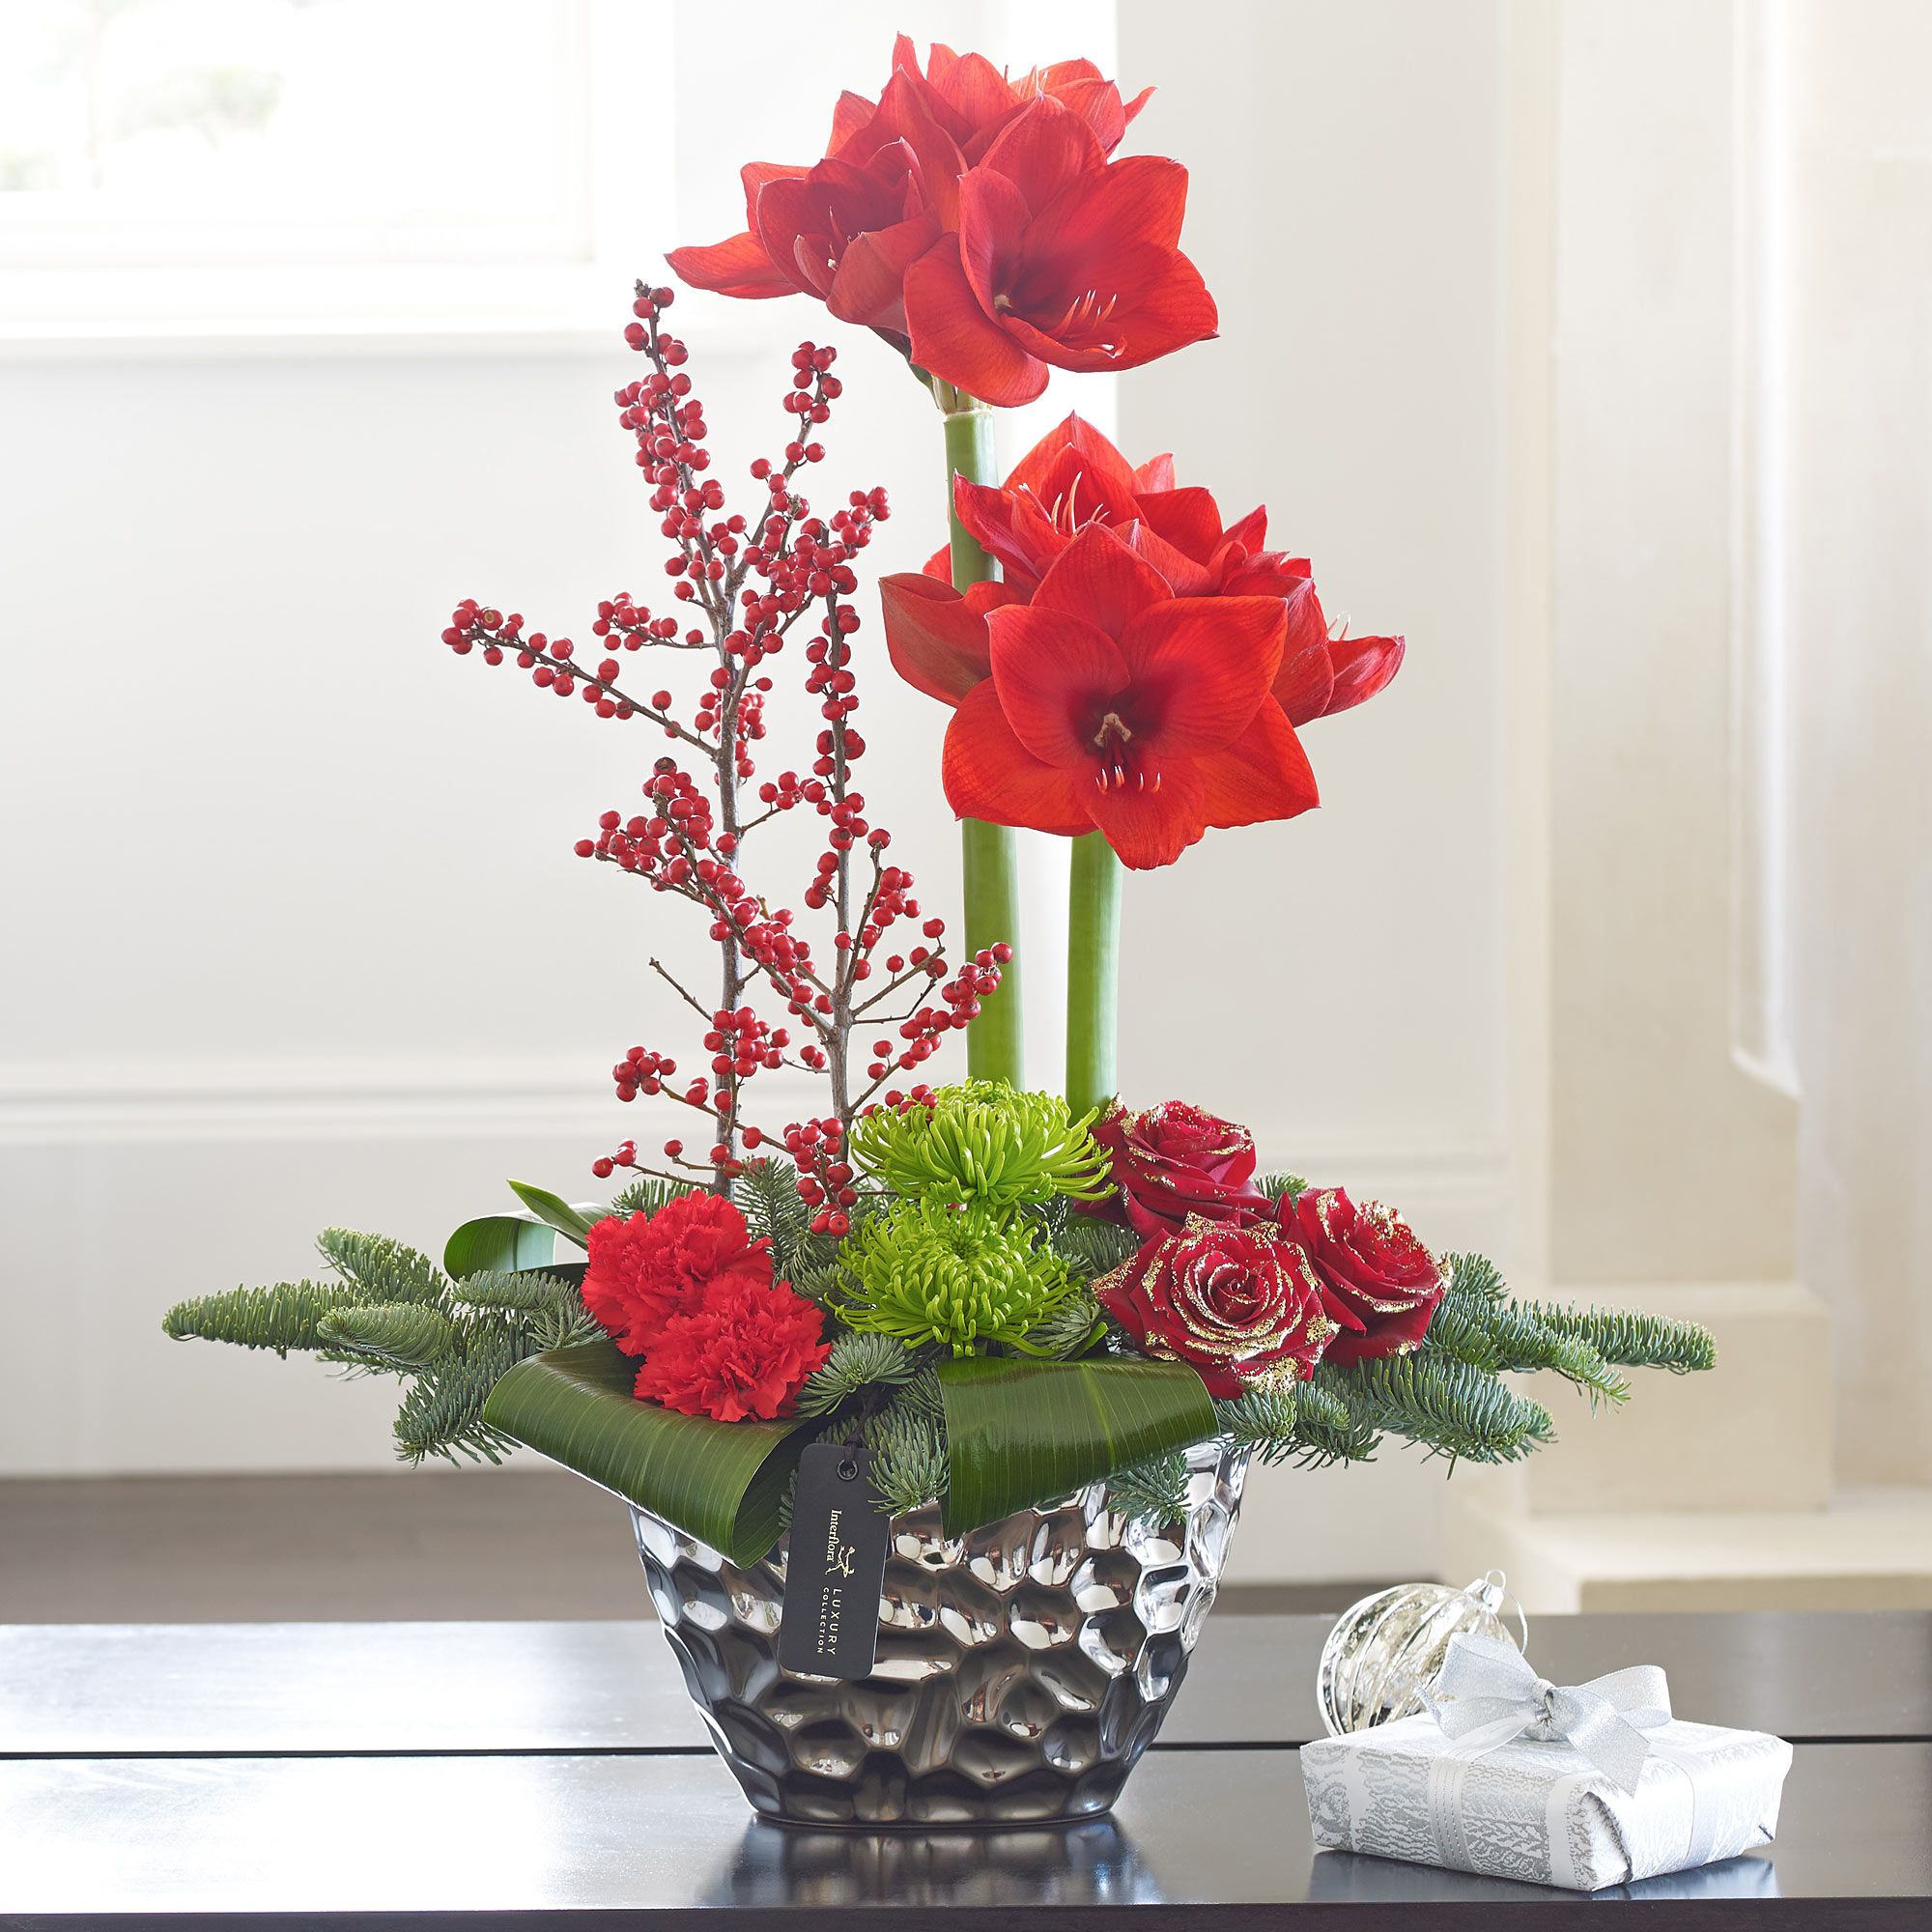 This luxurious arrangement of Amaryllis looks fabulous in